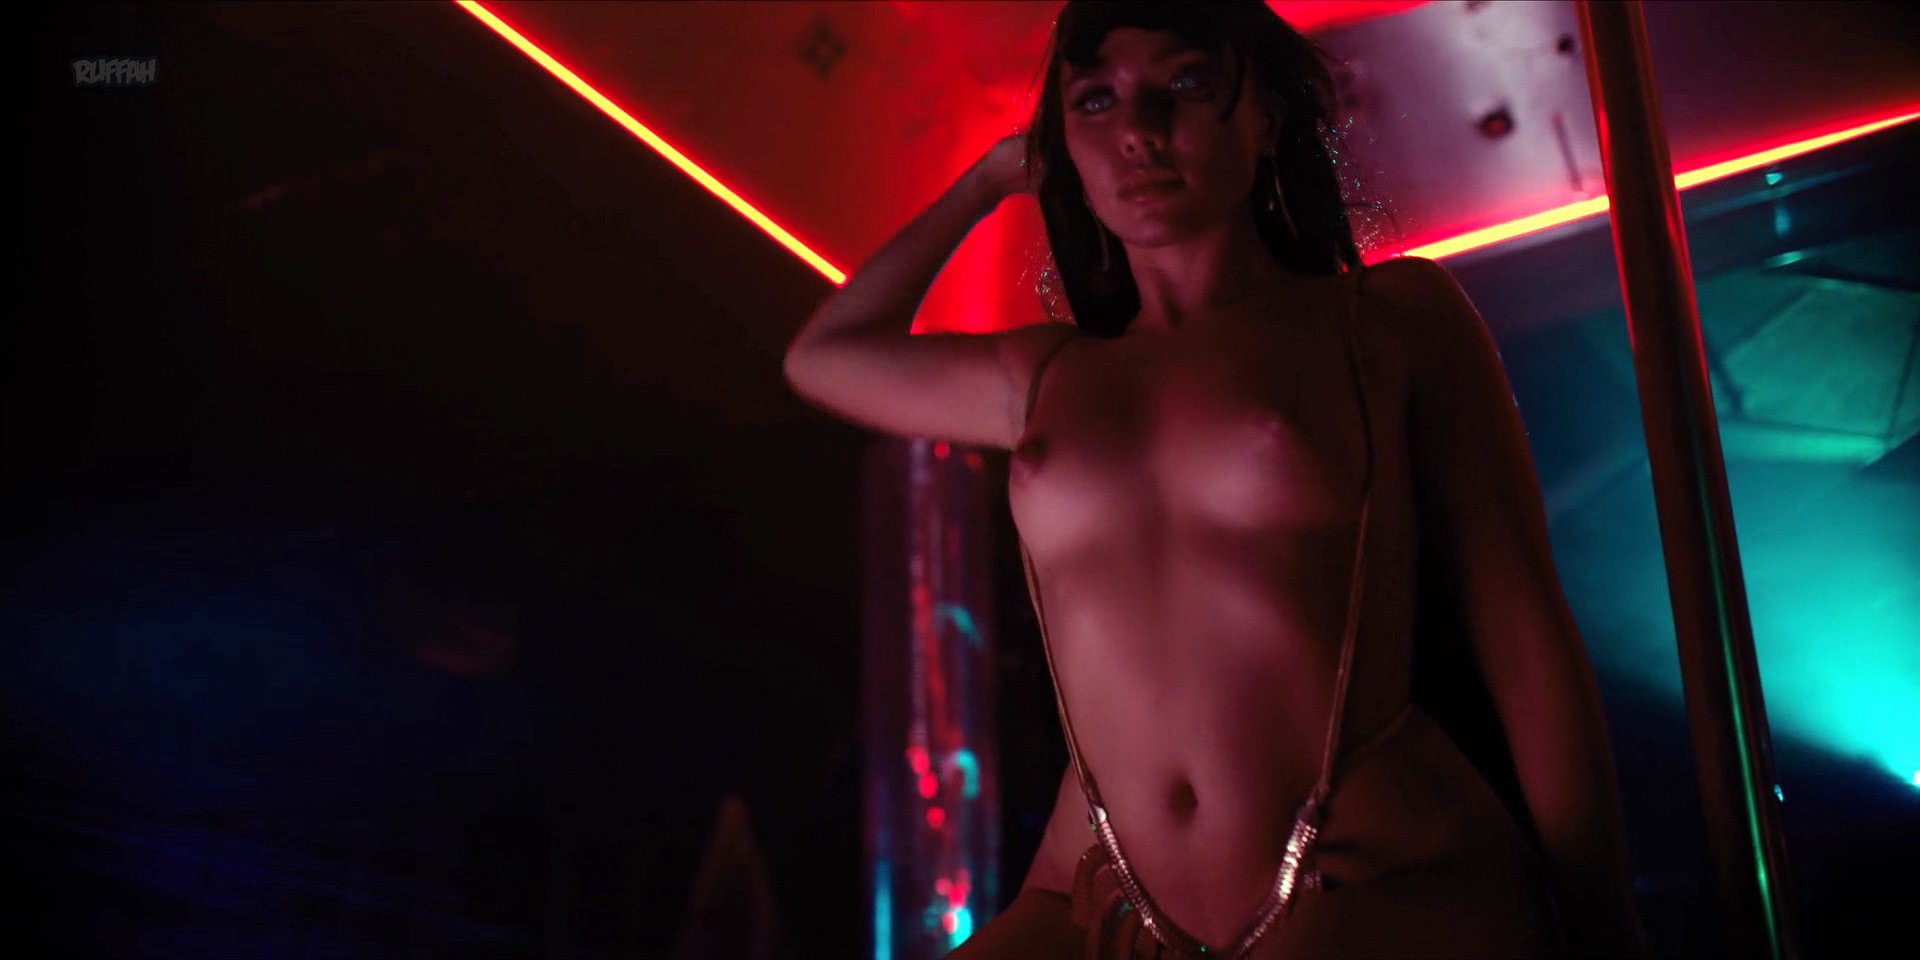 Lisa Chandler nude, Kat Pasion nude - Altered Carbon s01e01 (2018)